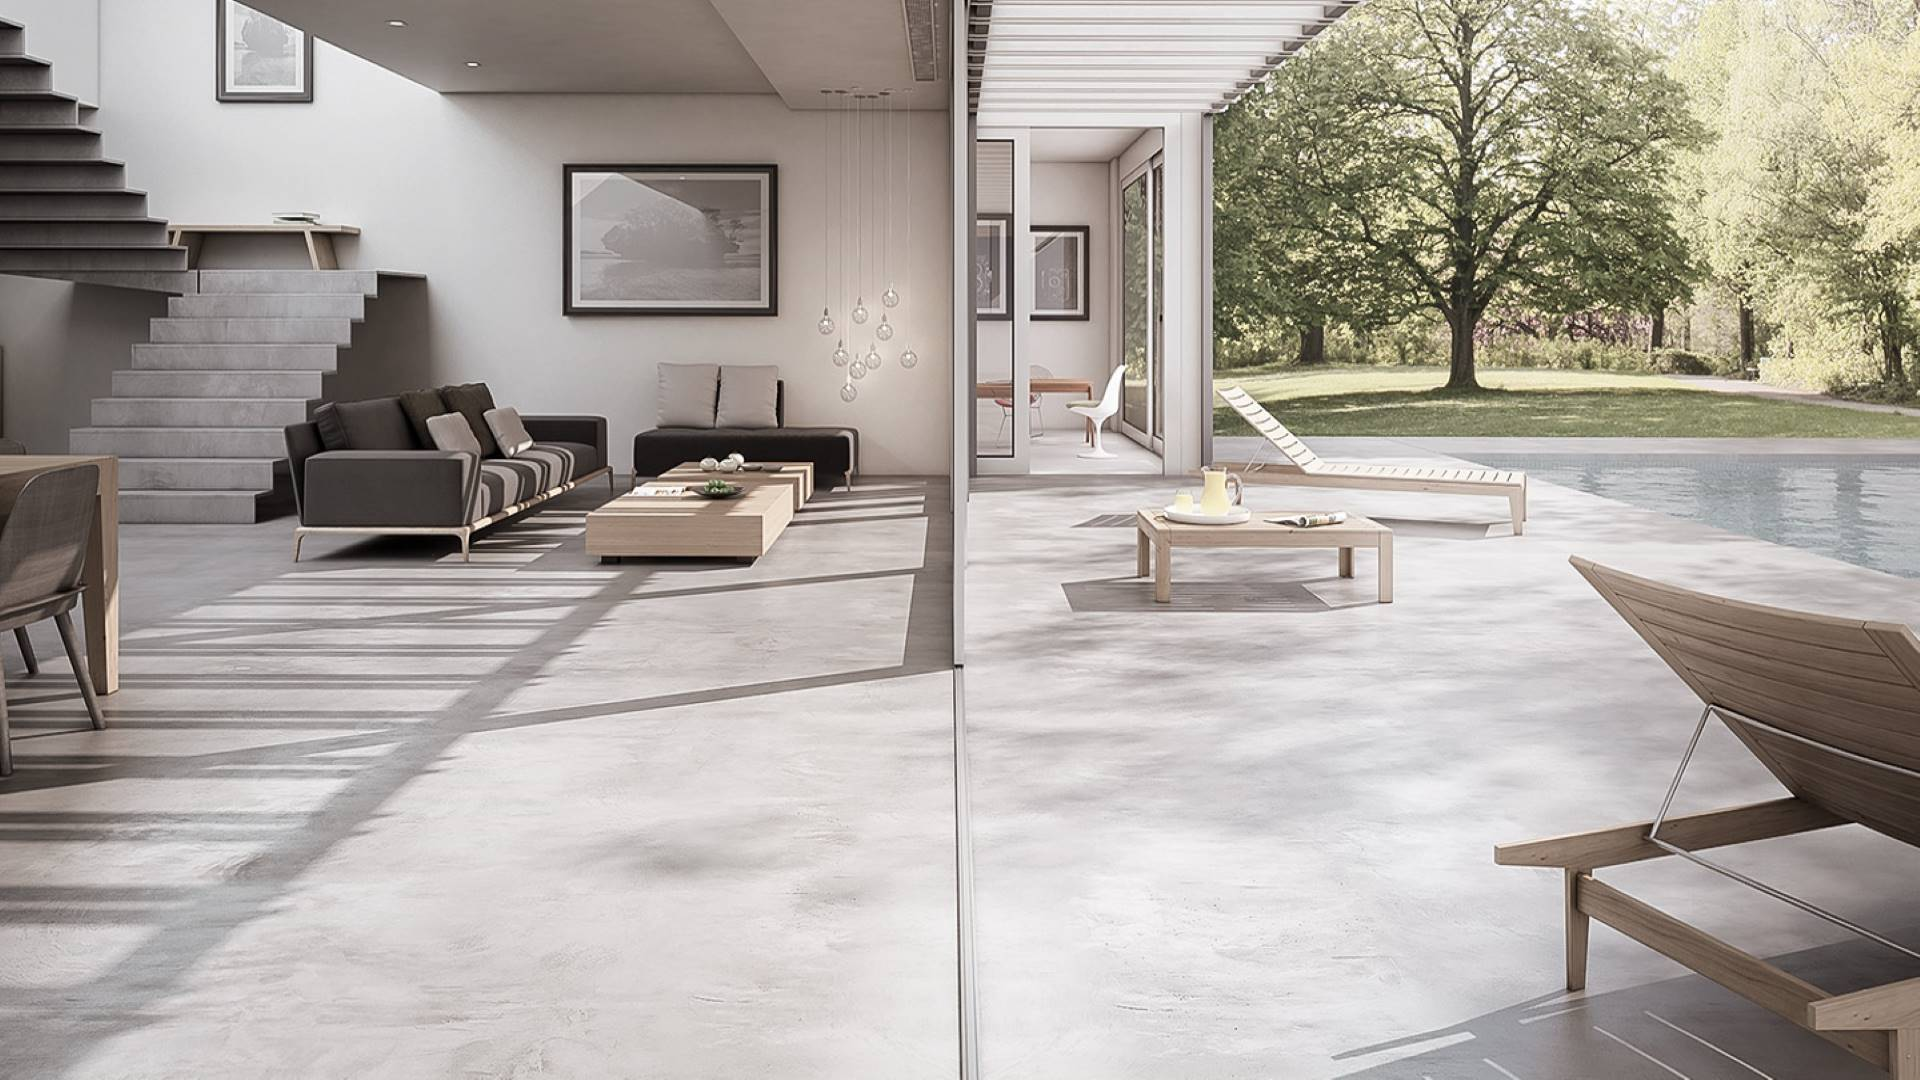 MICROCEMENT ON STAIRS INTERIOR AND EXTERIOR FLOORS